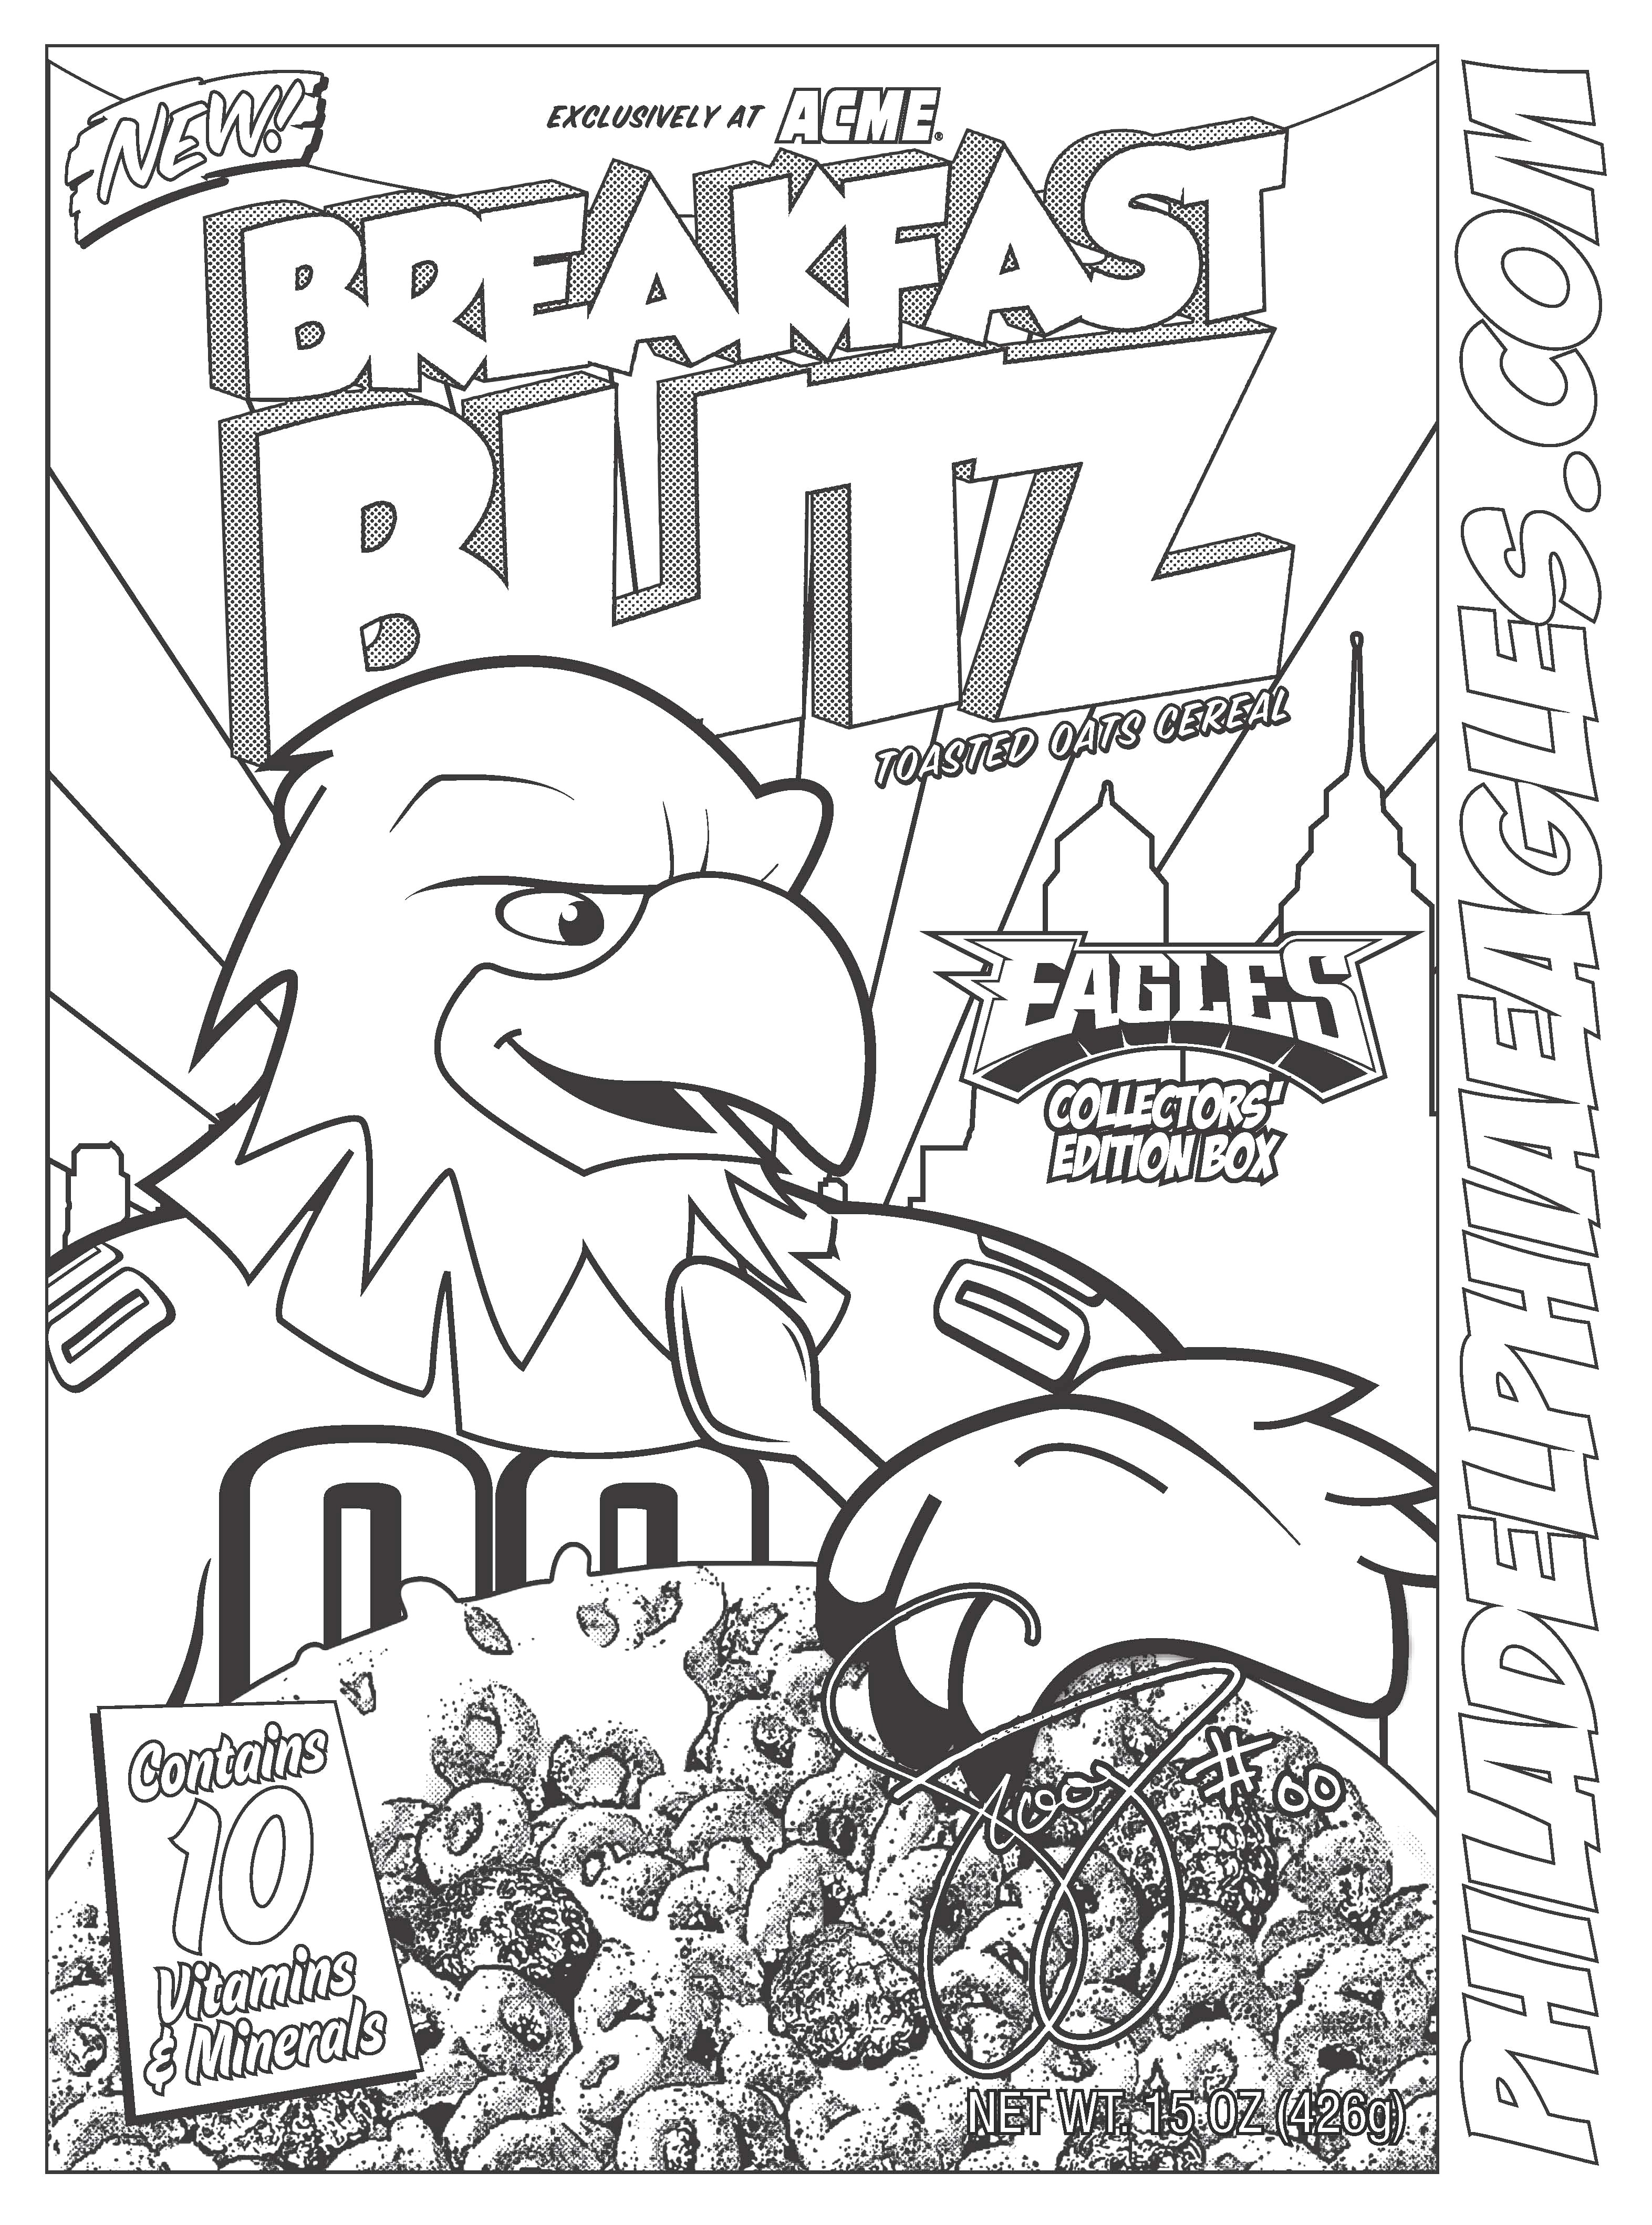 seahawks coloring pages to print seattle seahawks mascot coloring page coloring pages print coloring to pages seahawks